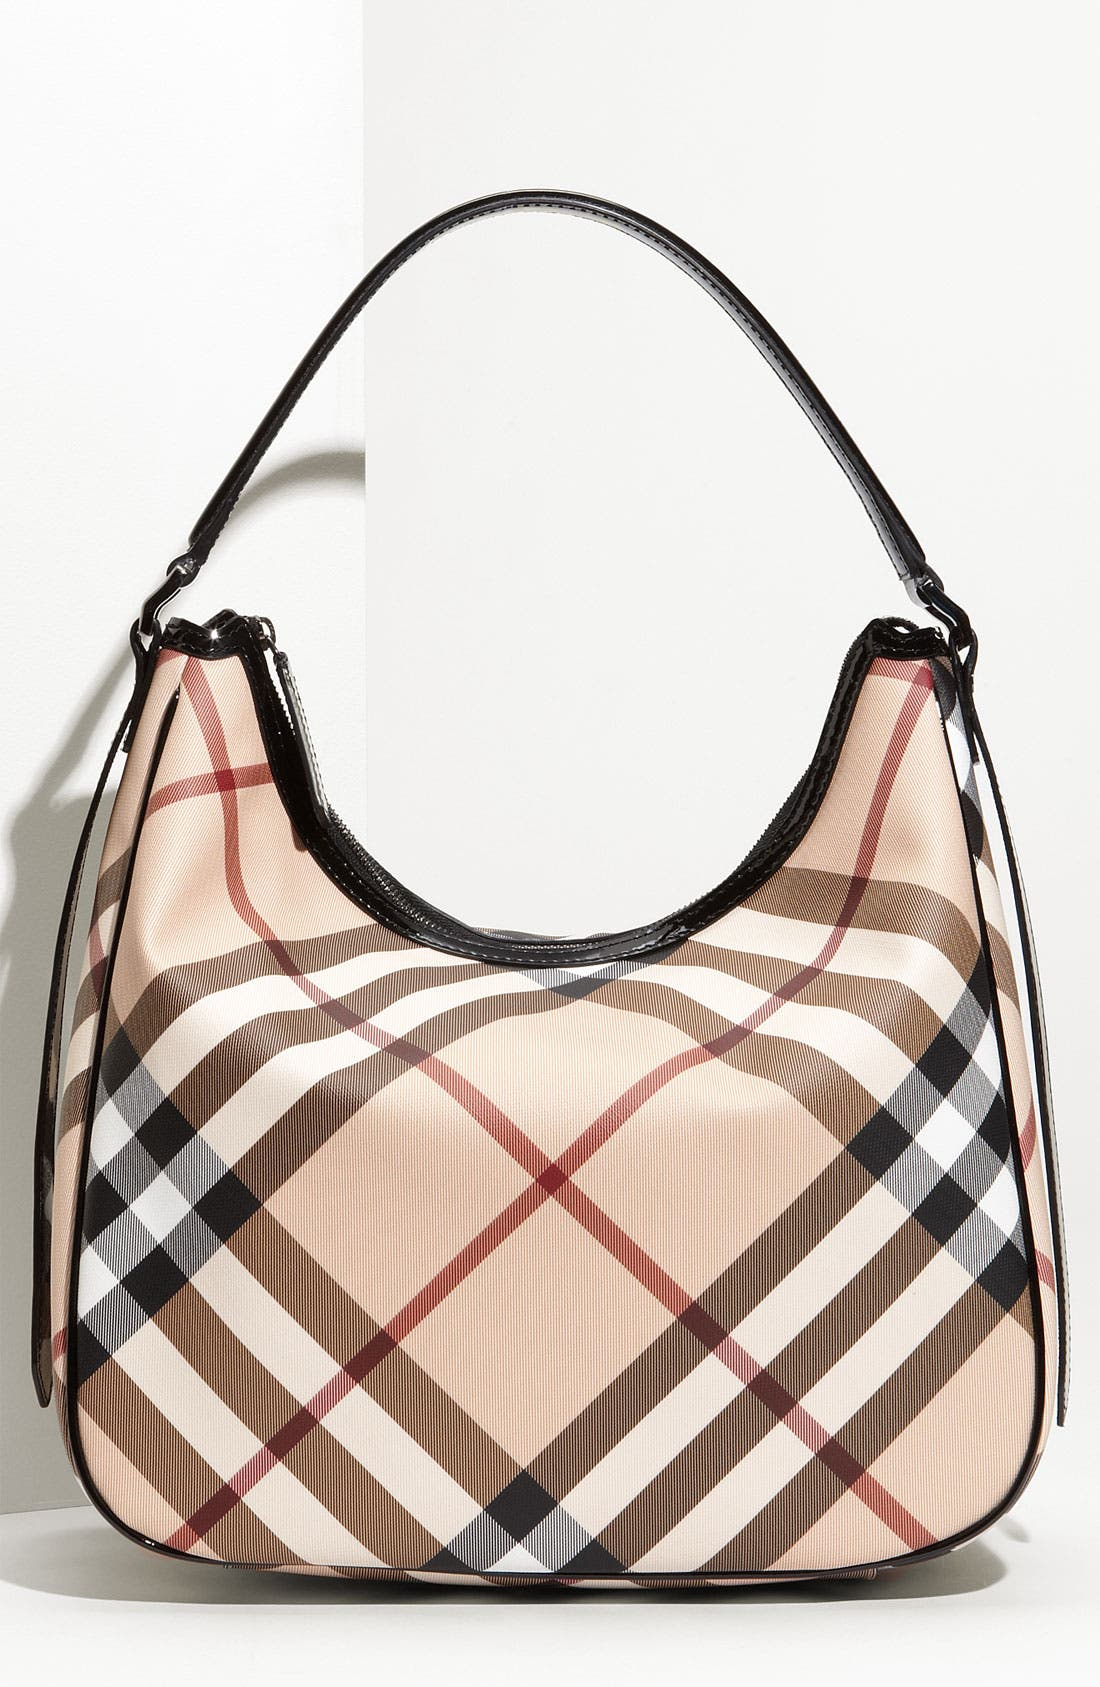 Alternate Image 1 Selected - Burberry 'Nova Check' Hobo